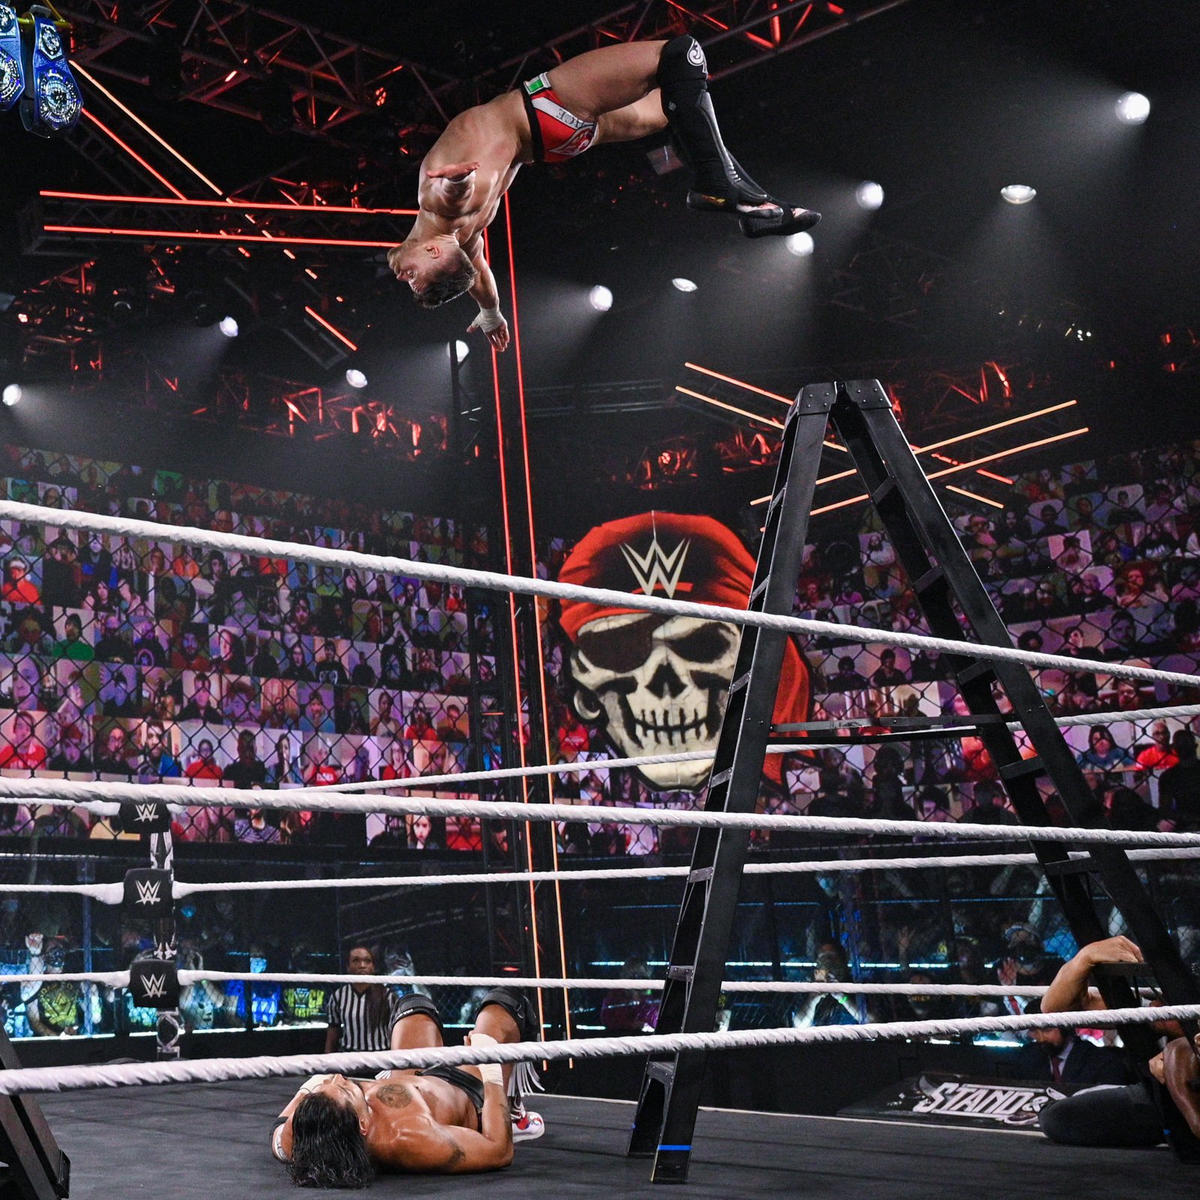 The John Report: WWE NXT Takeover Stand & Deliver 2021 Review – Night 2 - TJRWrestling - WWE, AEW News, TV Reviews, PPVs, More!